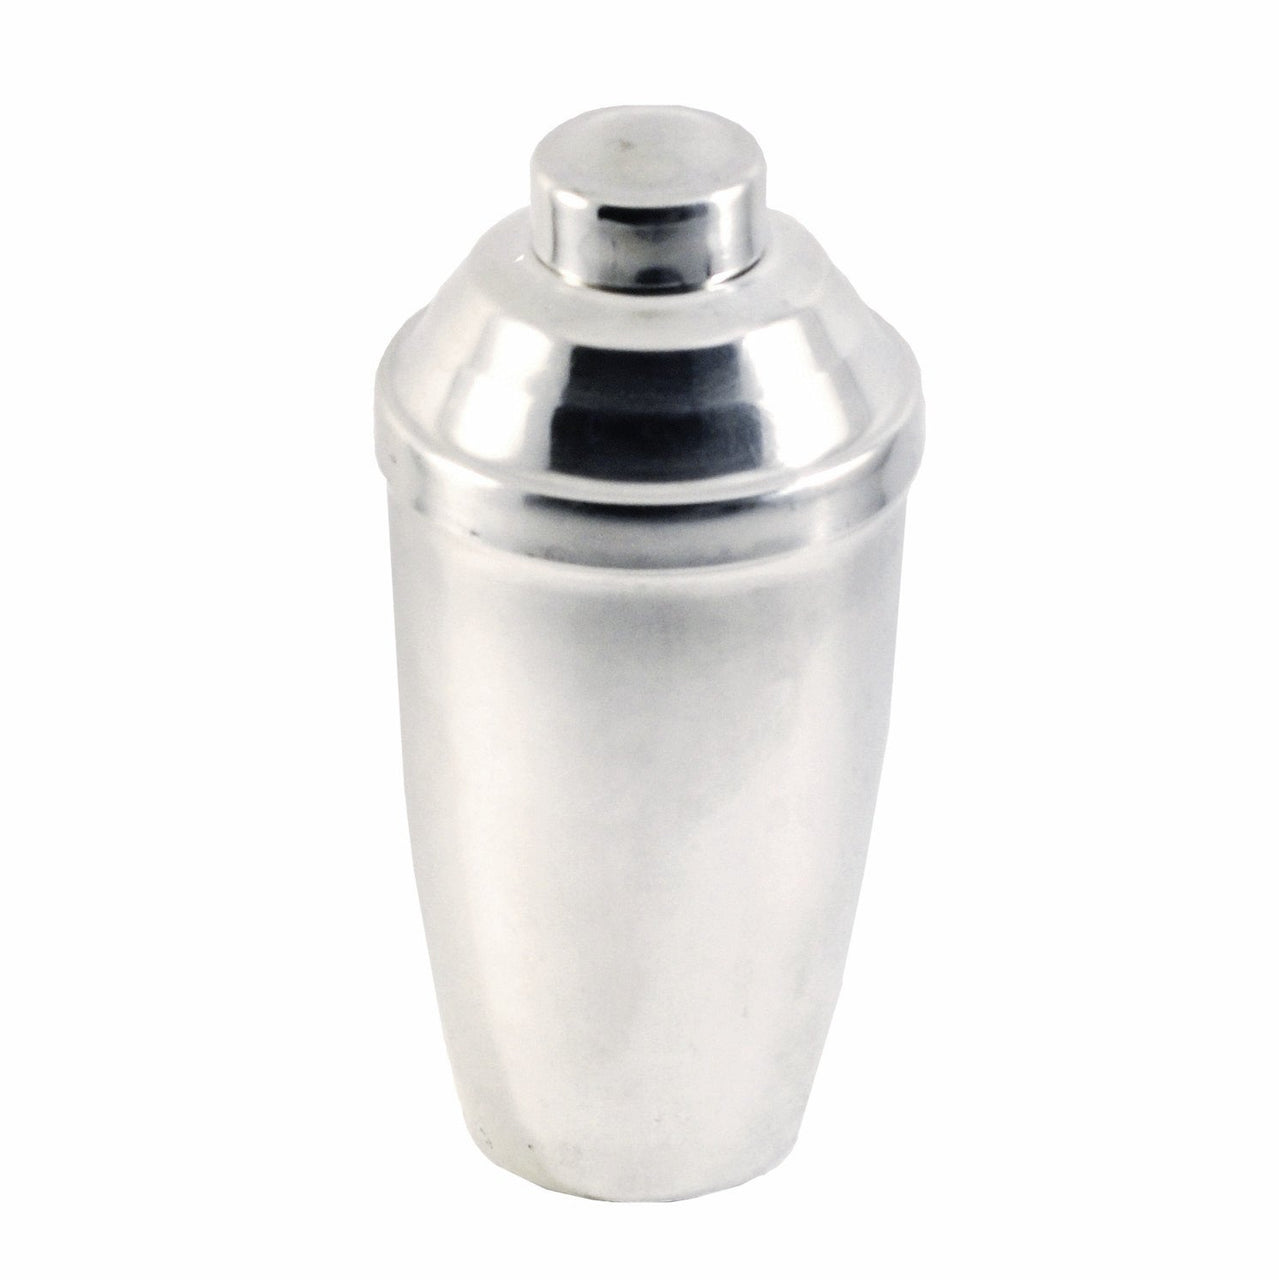 Vintage SIGG Silver Plate Cocktail Shaker, The Hour